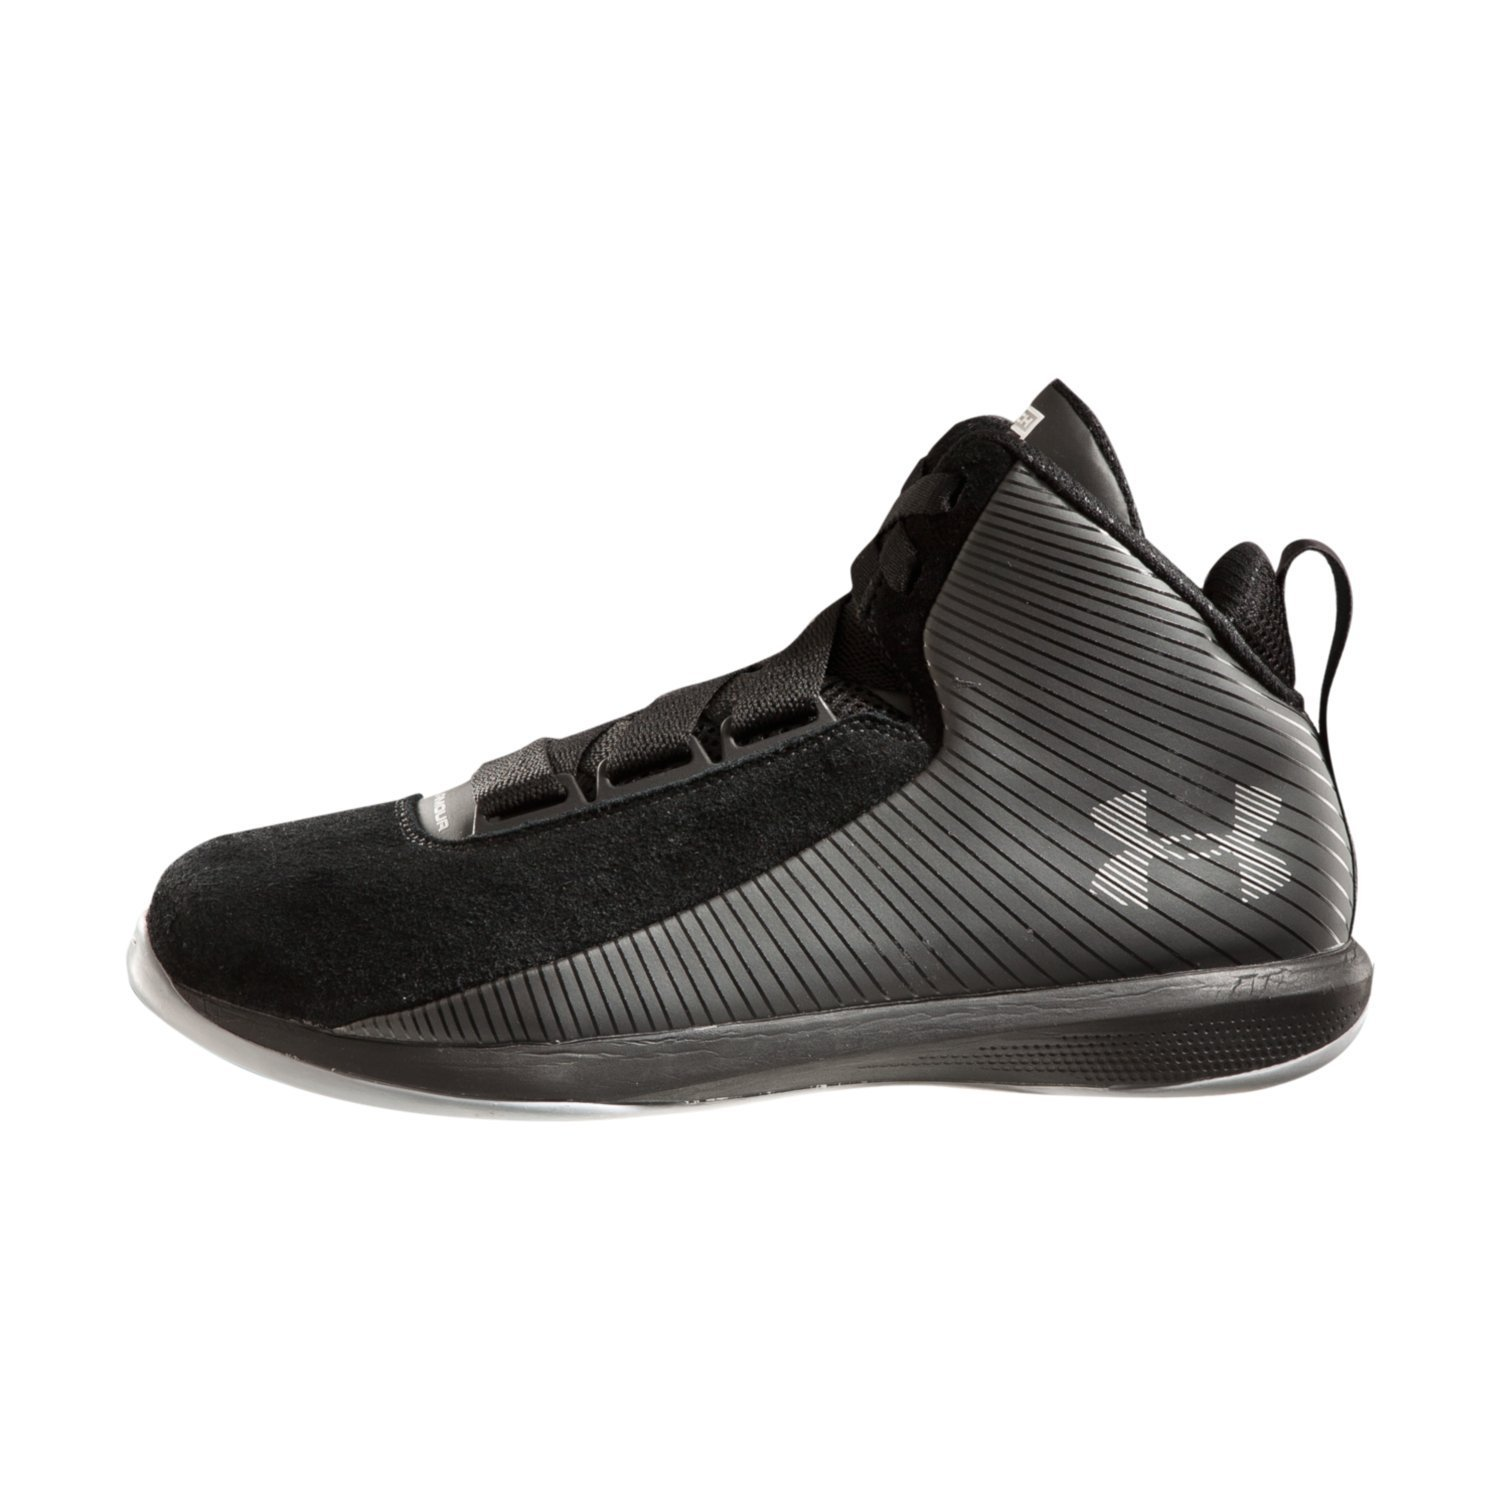 Create Under Armour Basketball Shoes